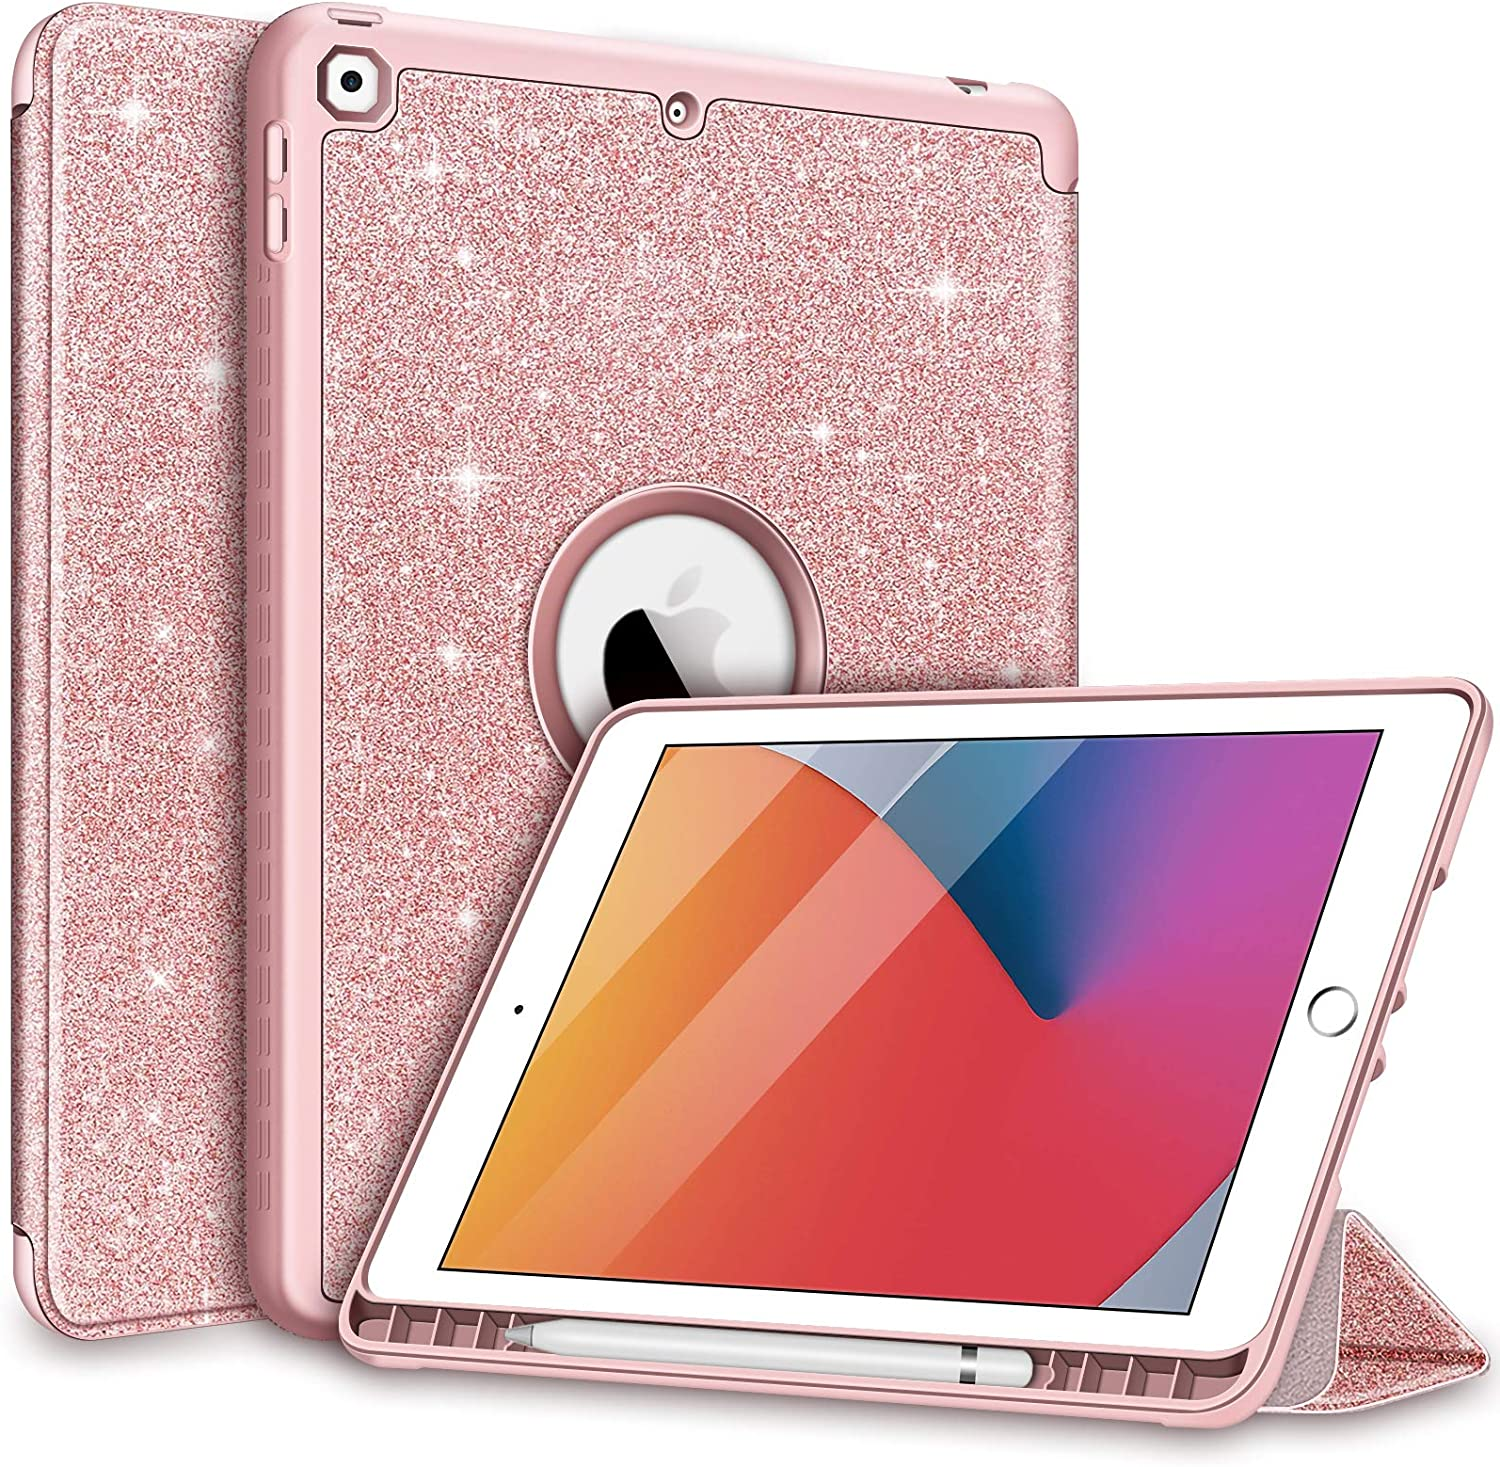 Hython for iPad 10.2 Case iPad 8 2020 Case iPad 7th 2019 Case, Built-in Stand Design with Apple Pencil Holder, Glitter Bling Sparkle Hybrid Shockproof Protective Hard Case for iPad 7 and 8, Rose Gold